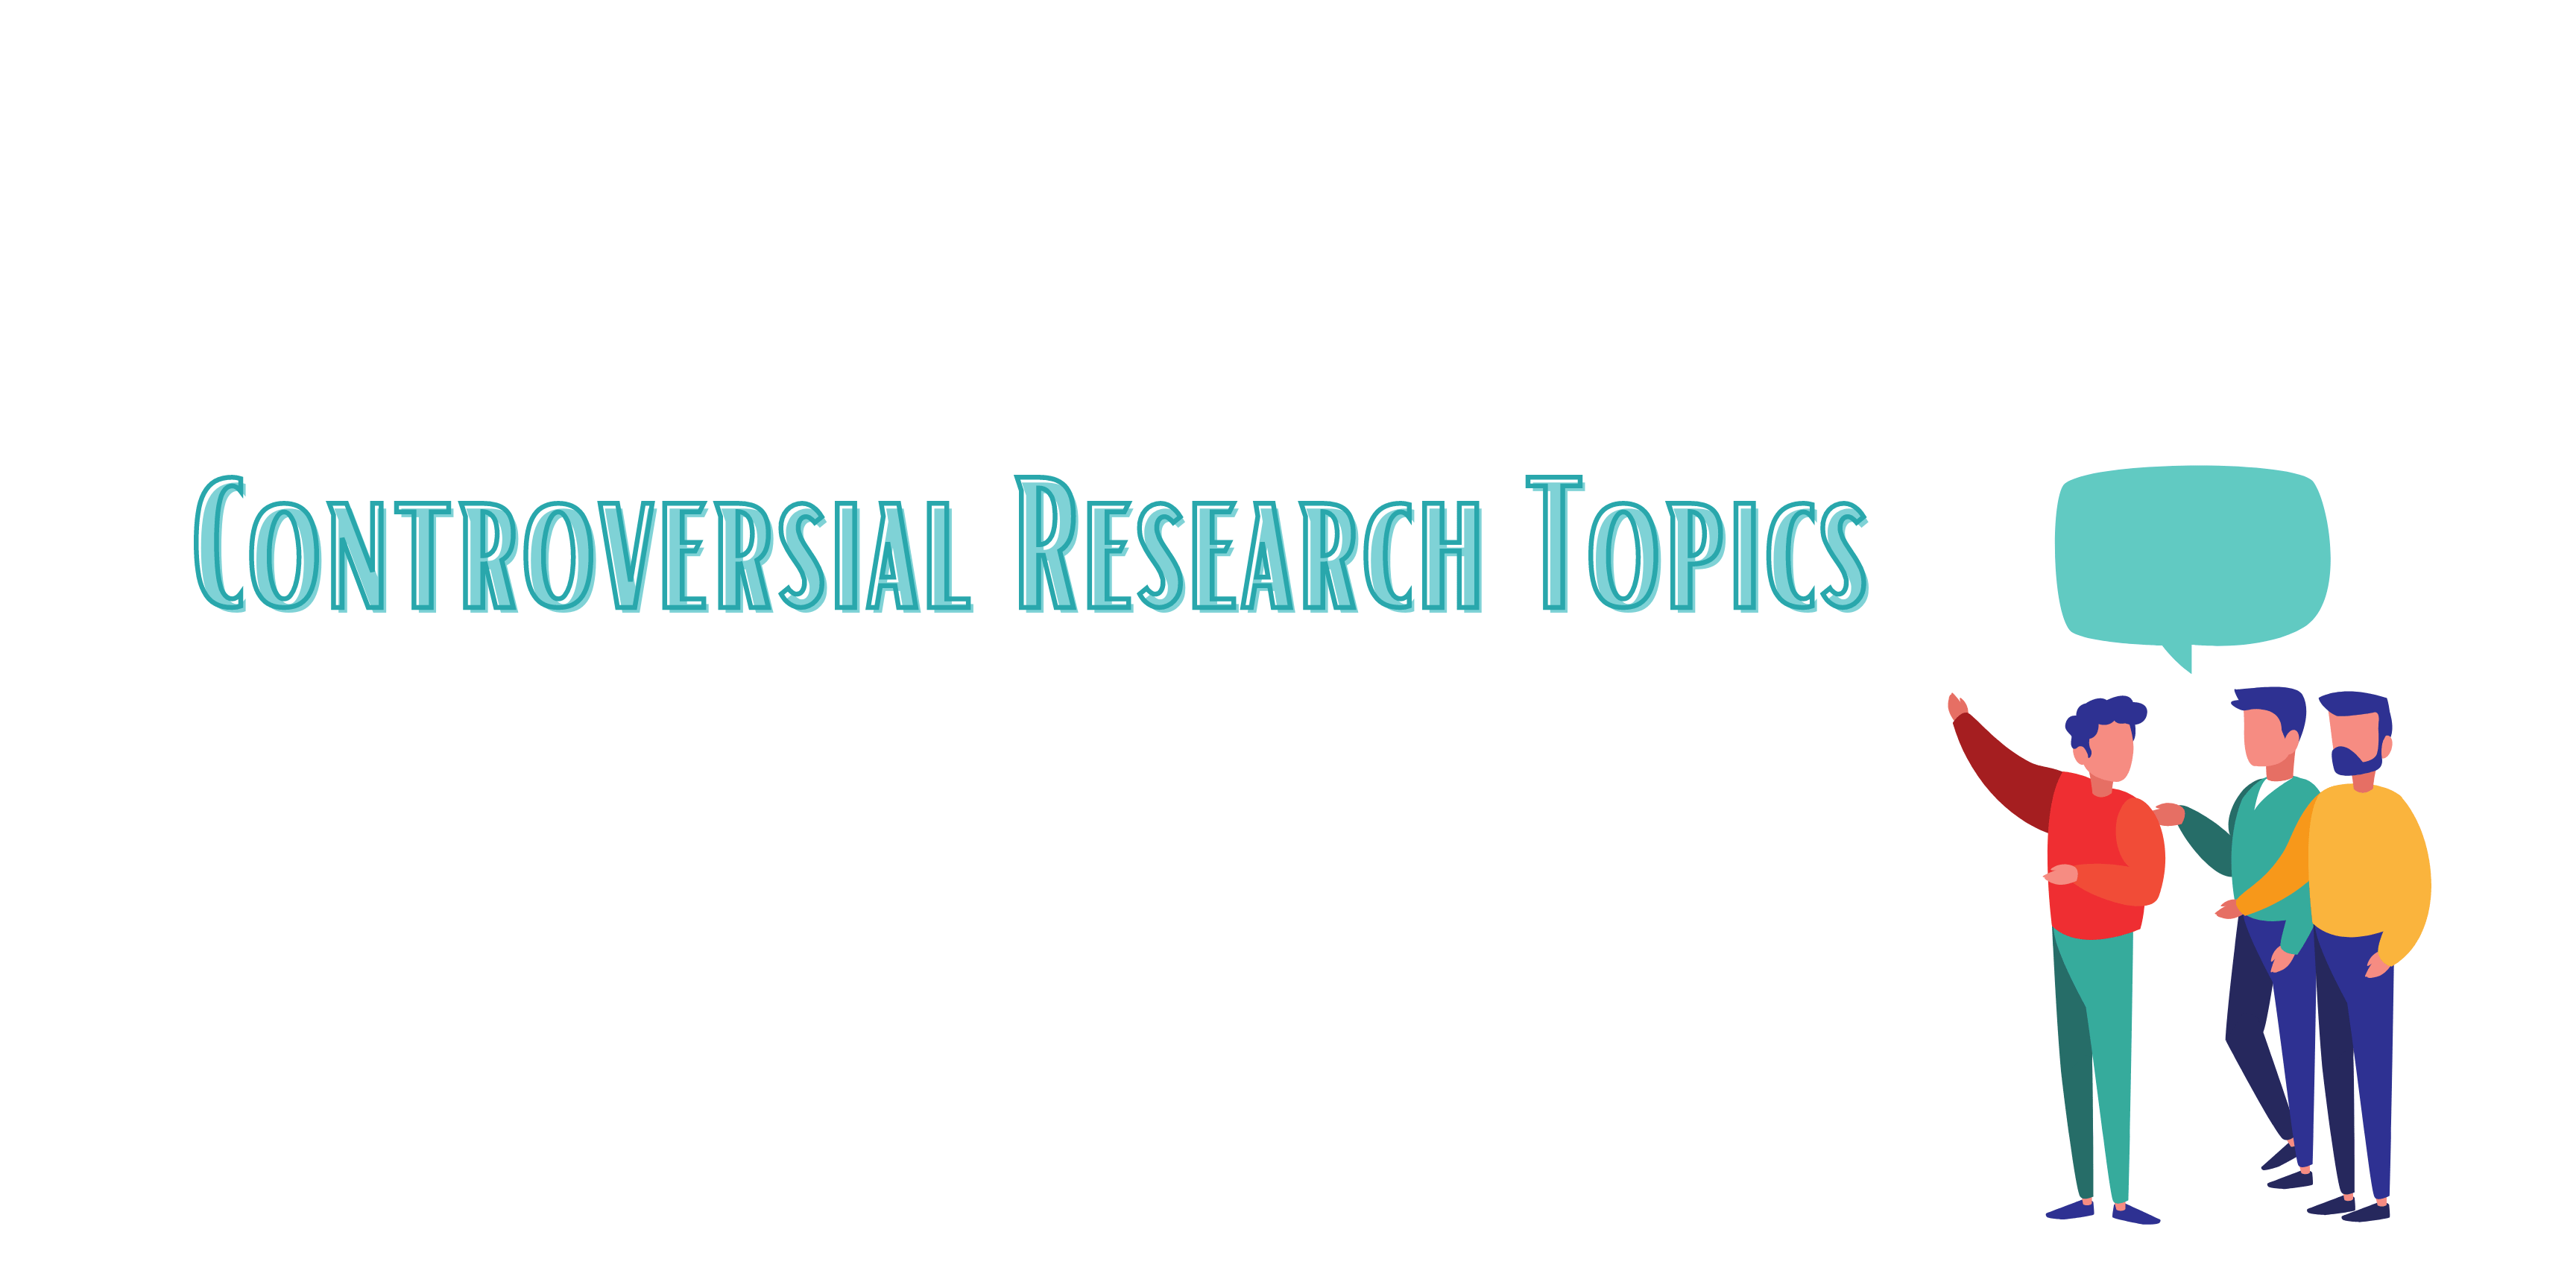 Controversial Research Topics